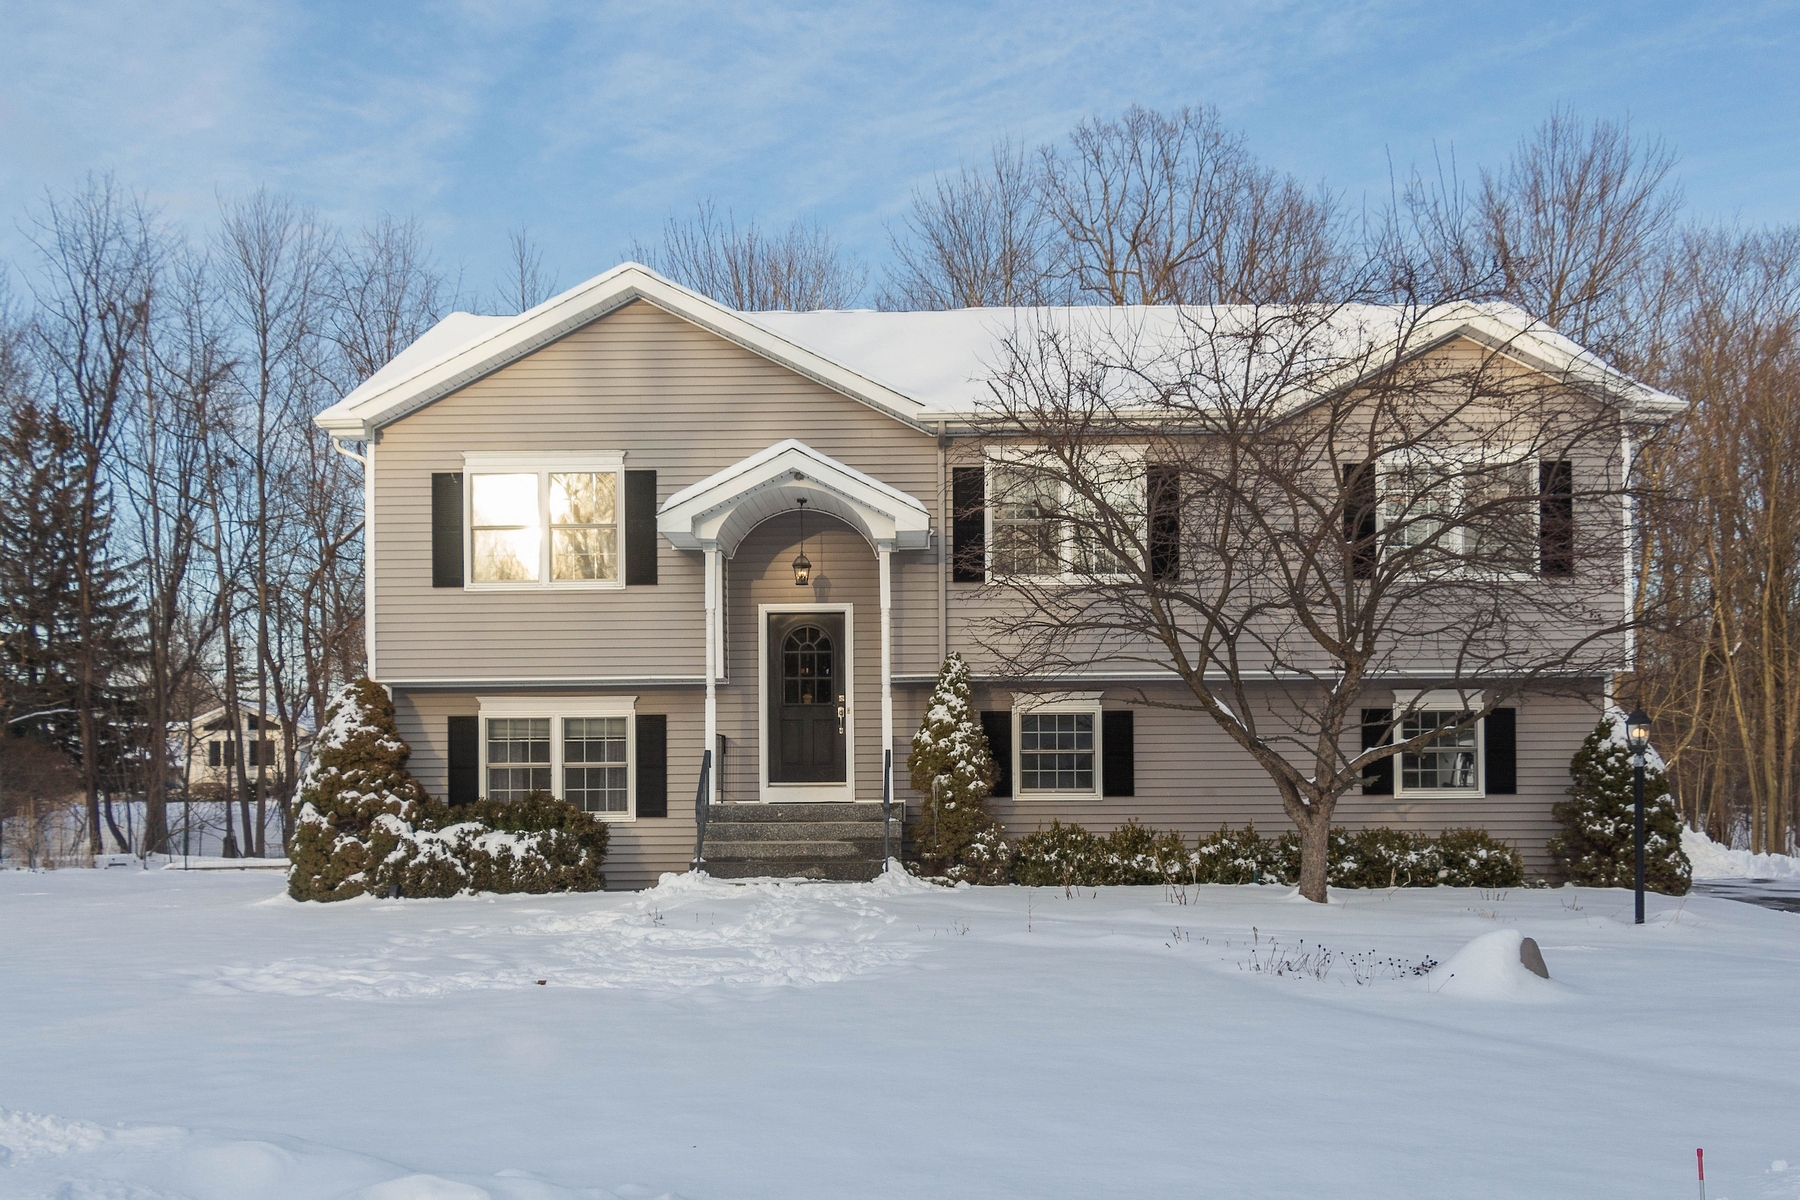 Single Family Home for Sale at Custom Colonial Home 4201 B Albany St Albany, New York 12205 United States